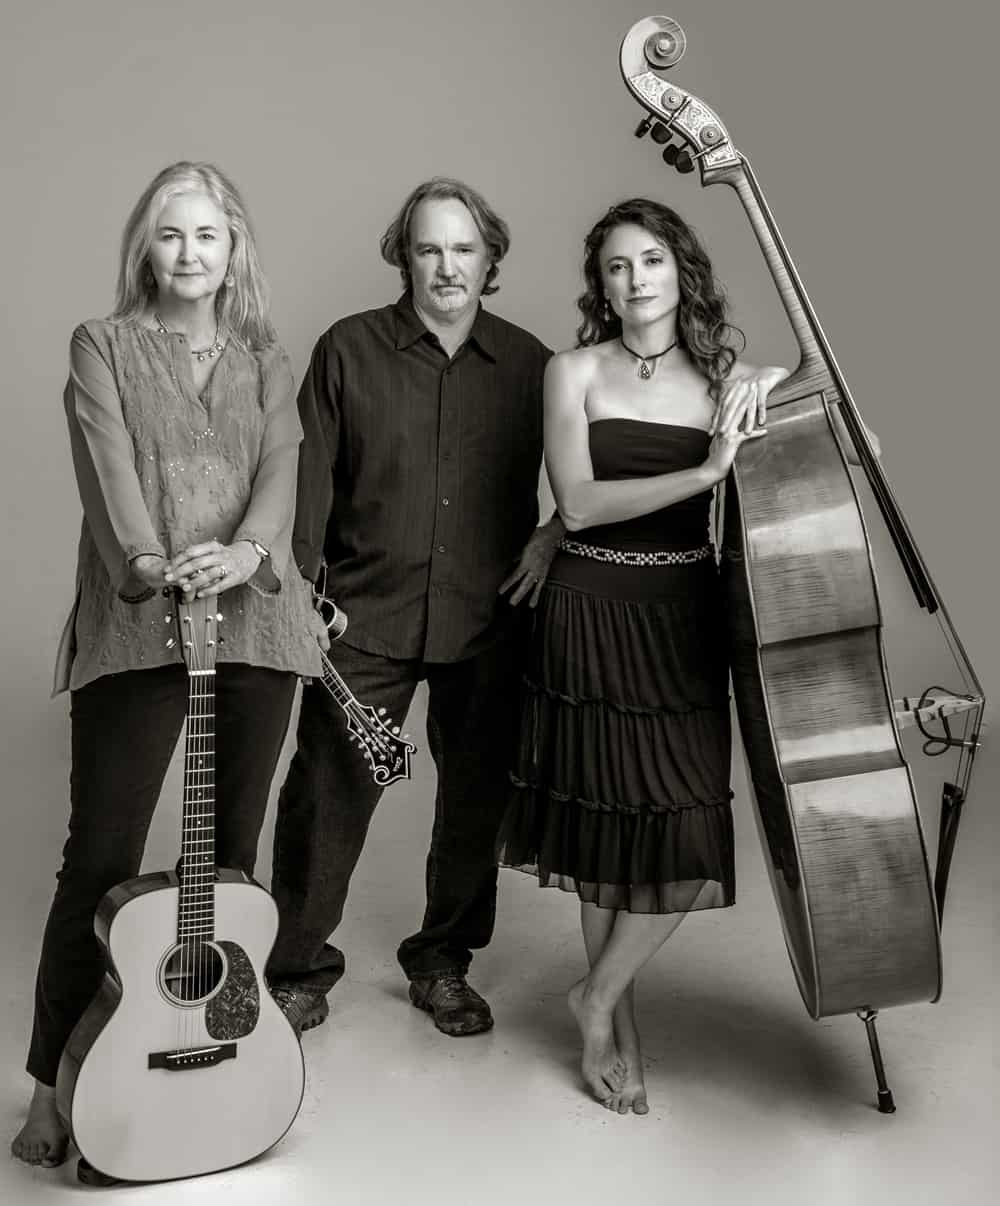 CD Release Concert for the Hard Road Trio